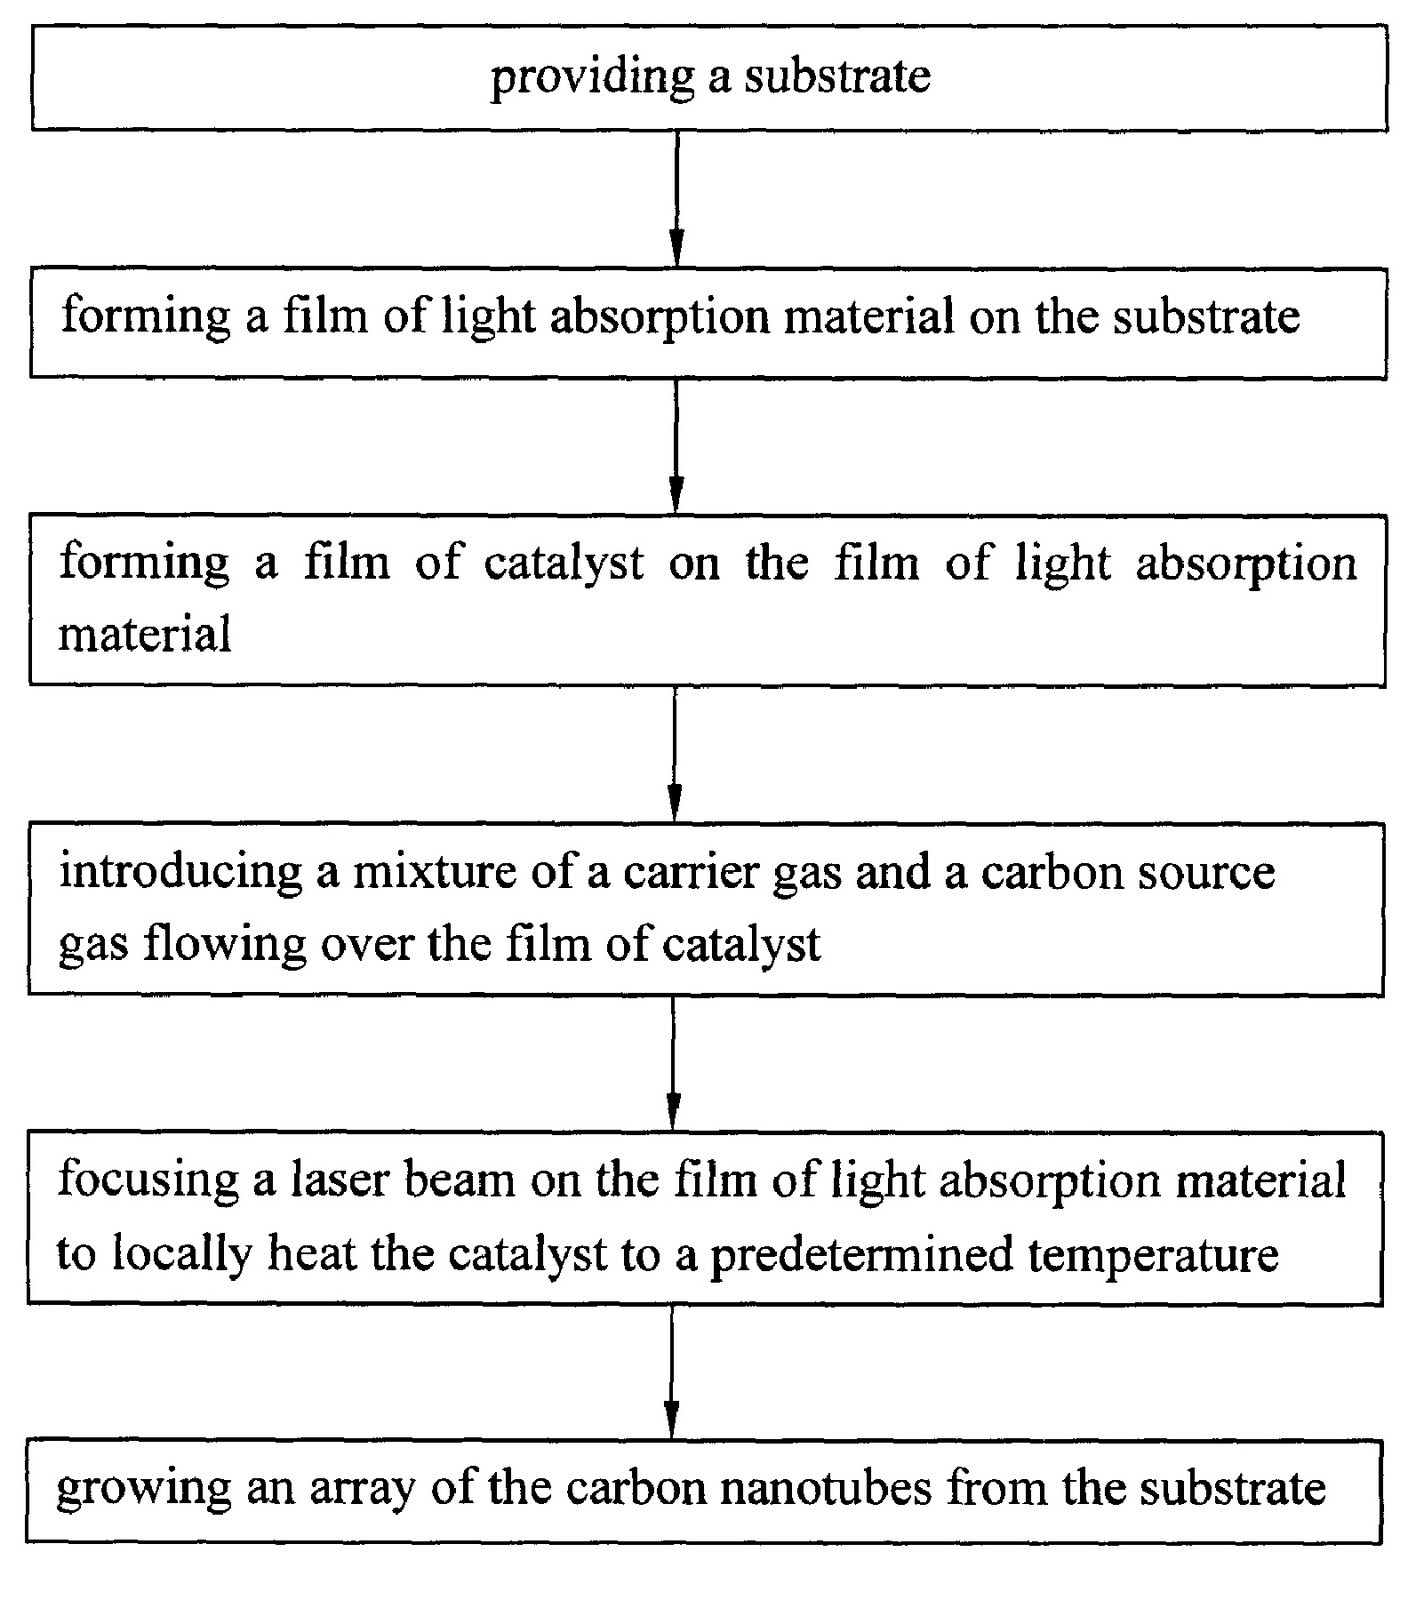 Ideas inventions and innovations laser based method for growing 1 is a flow chart of a method for making an array of carbon nanotubes nvjuhfo Image collections